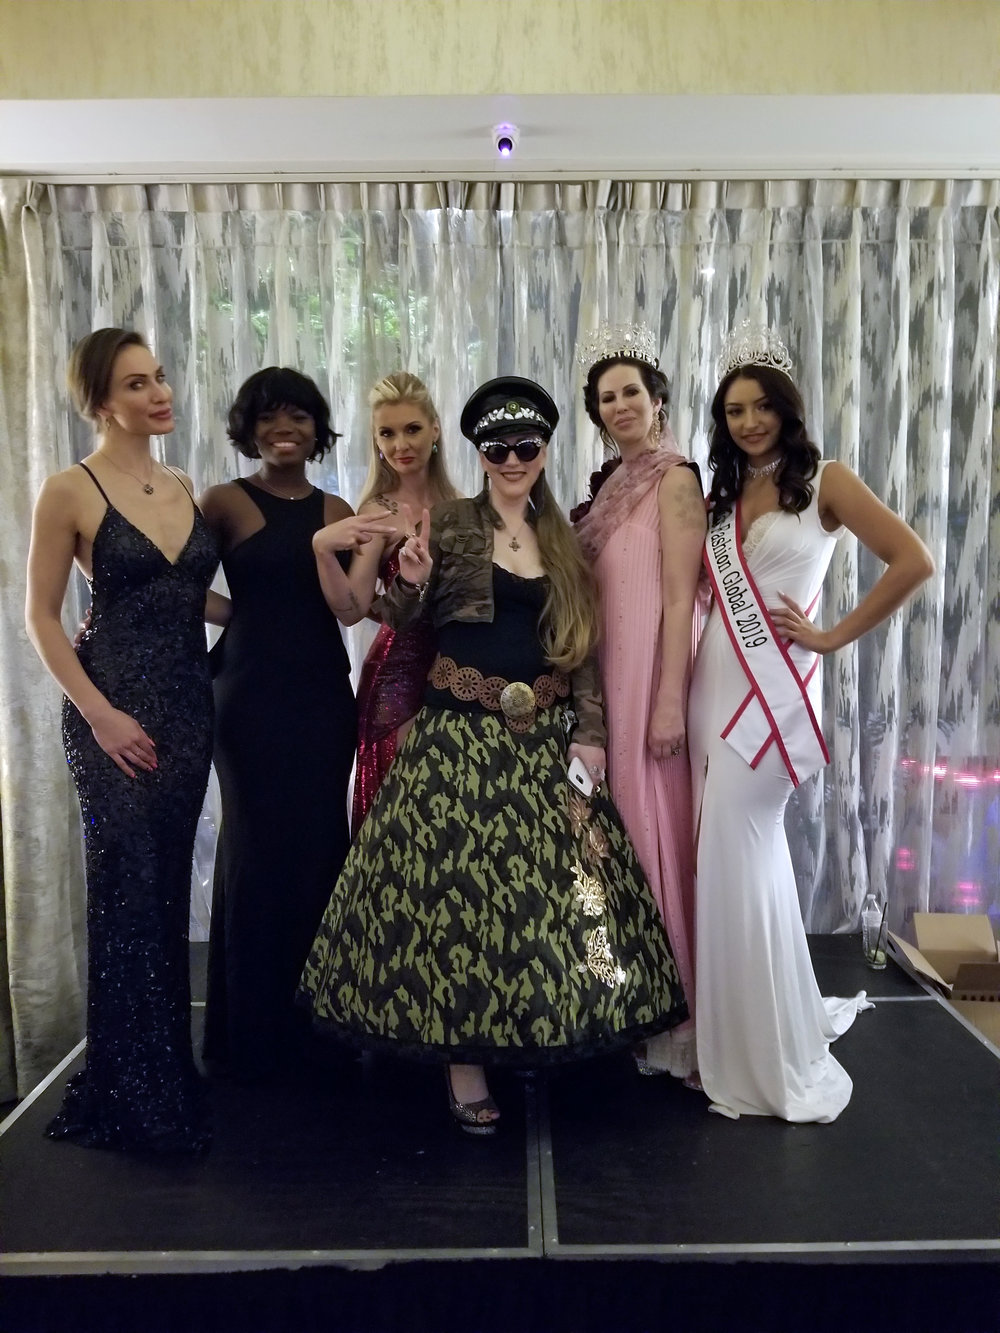 Being a designer, Madam Chebës never hesitates to show her unique style at any moment. Its part of her life! See her here with all the stunning female contestants!